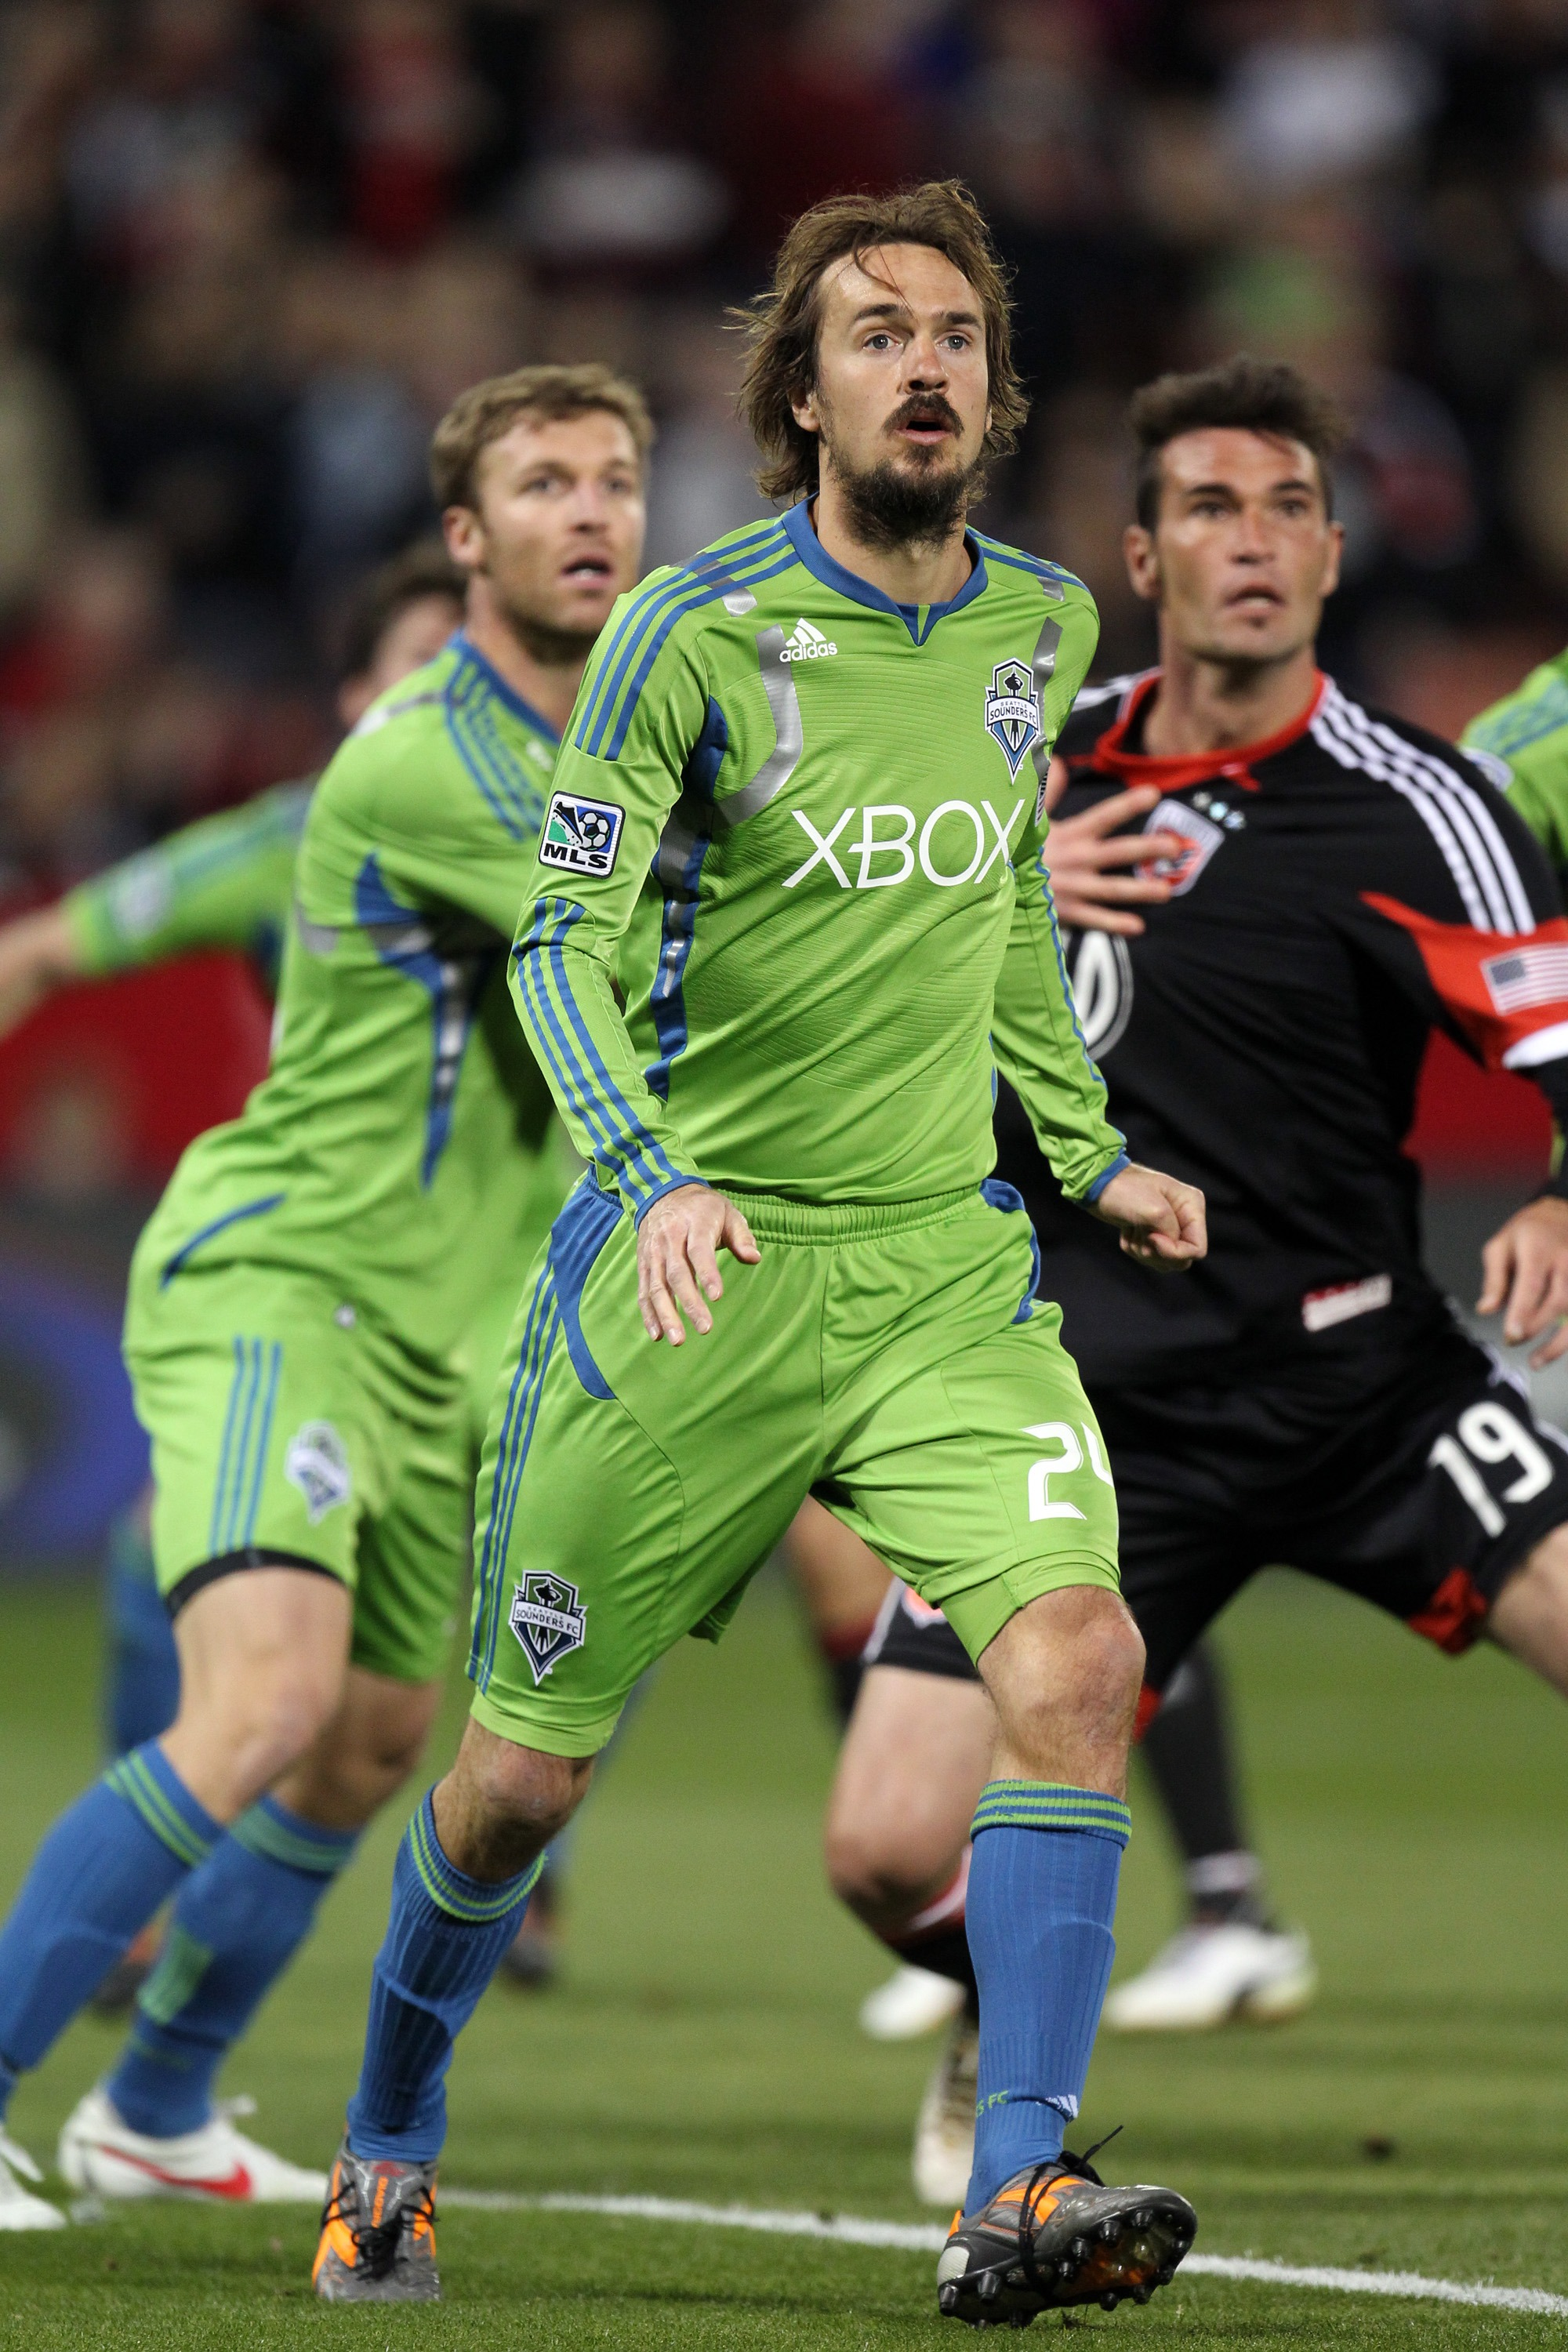 Seattle Sounders and DC United are two of MLS's premier clubs.